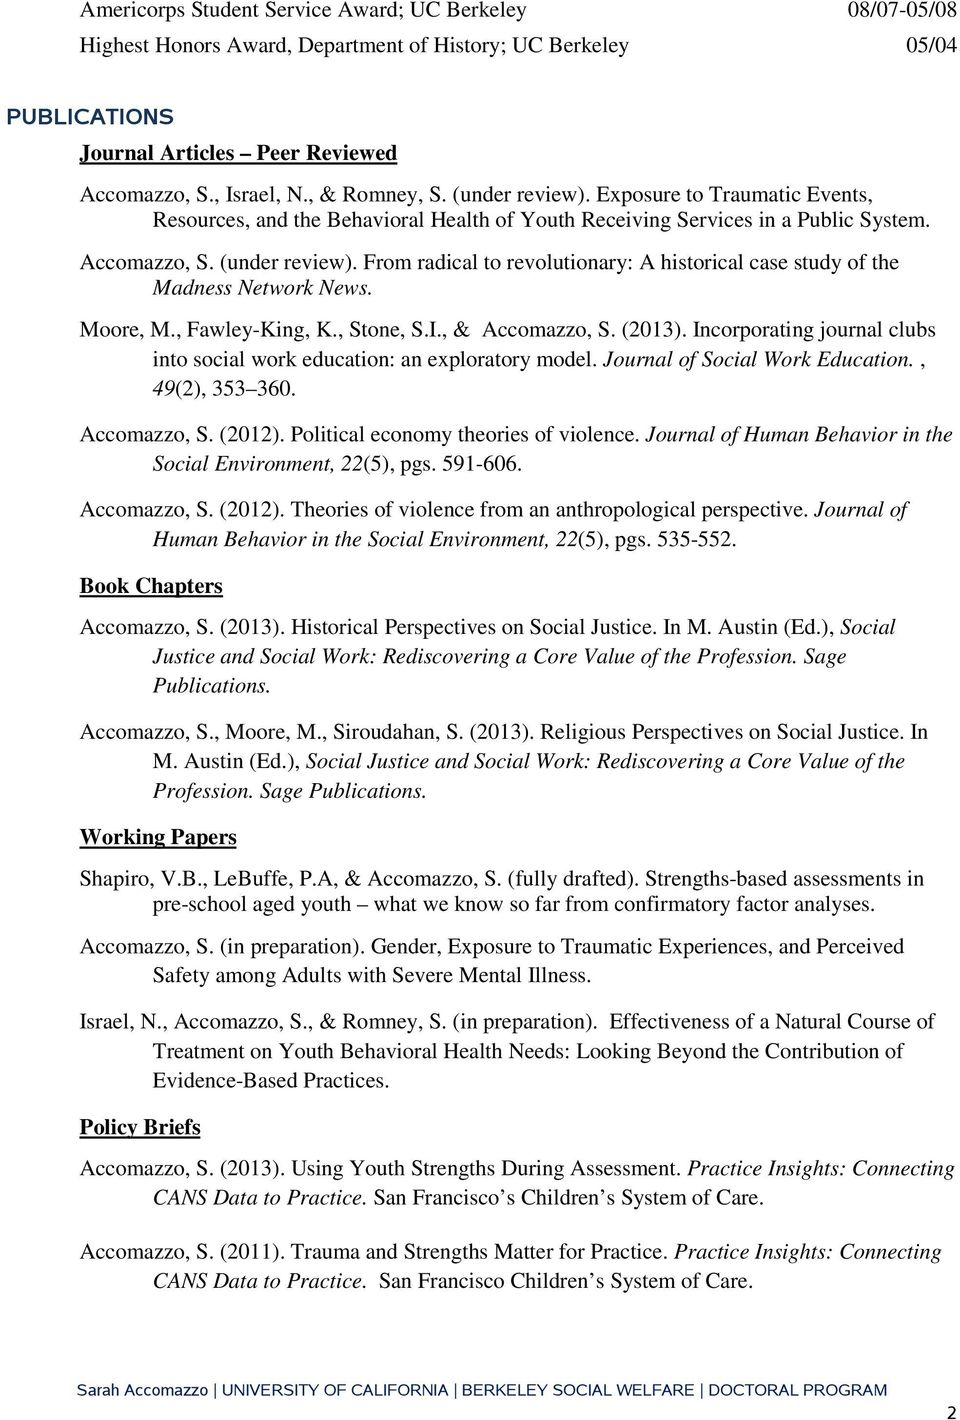 Moore, M., Fawley-King, K., Stone, S.I., & Accomazzo, S. (2013). Incorporating journal clubs into social work education: an exploratory model. Journal of Social Work Education., 49(2), 353 360.